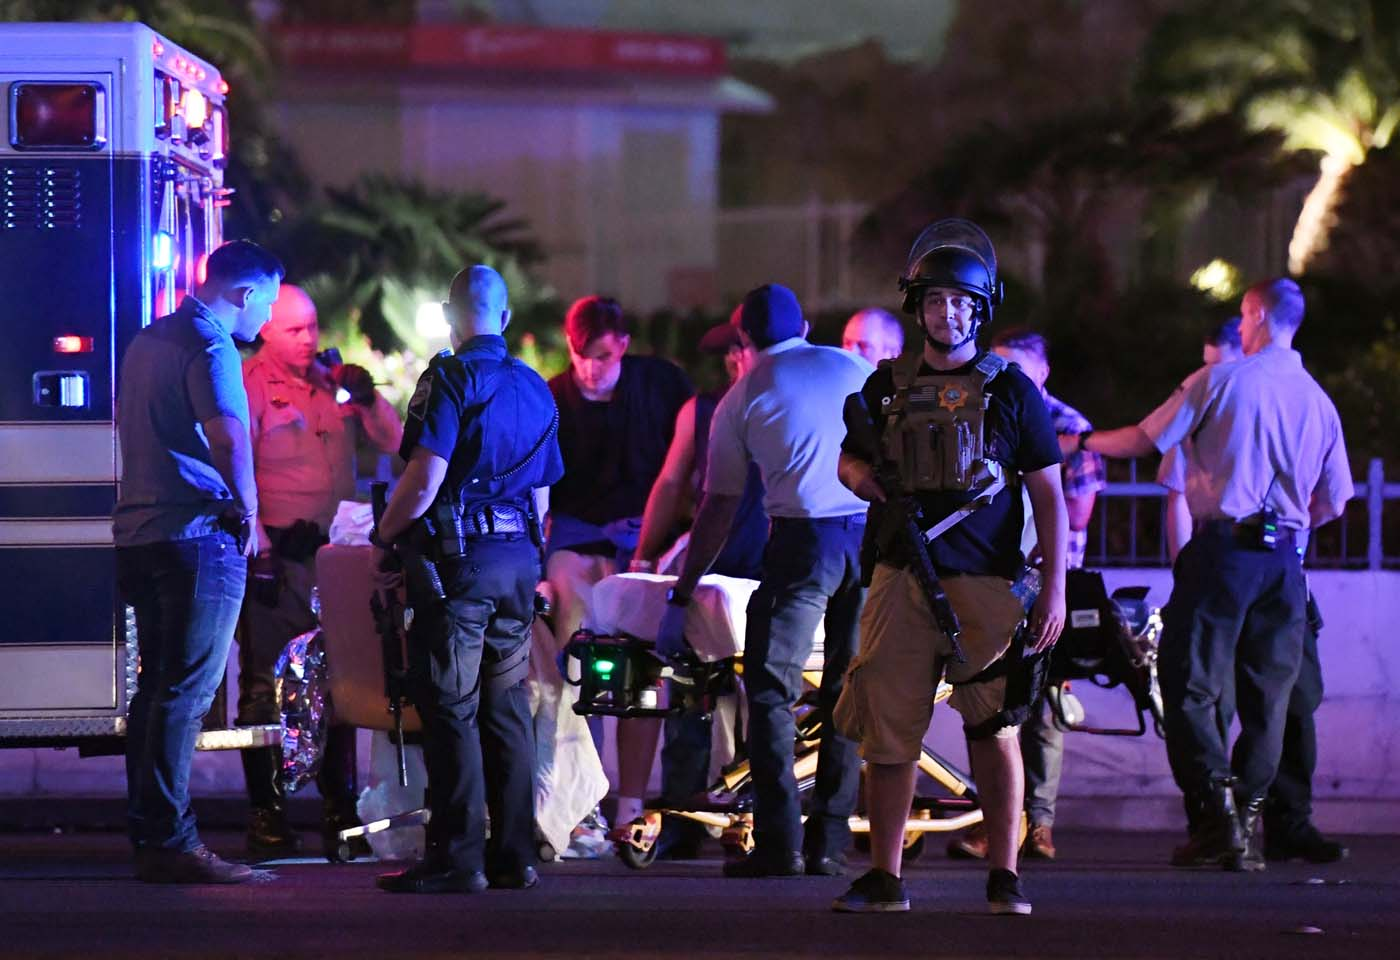 LAS VEGAS, NV - OCTOBER 02: Police officers stand by as medical personnel tend to a person on Tropicana Ave. near Las Vegas Boulevard after a mass shooting at a country music festival nearby on October 2, 2017 in Las Vegas, Nevada .A gunman has opened fire on a music festival in Las Vegas, leaving over 20 people dead. Police have confirmed that one suspect has been shot. The investigation is ongoing. Ethan Miller/Getty Images/AFP